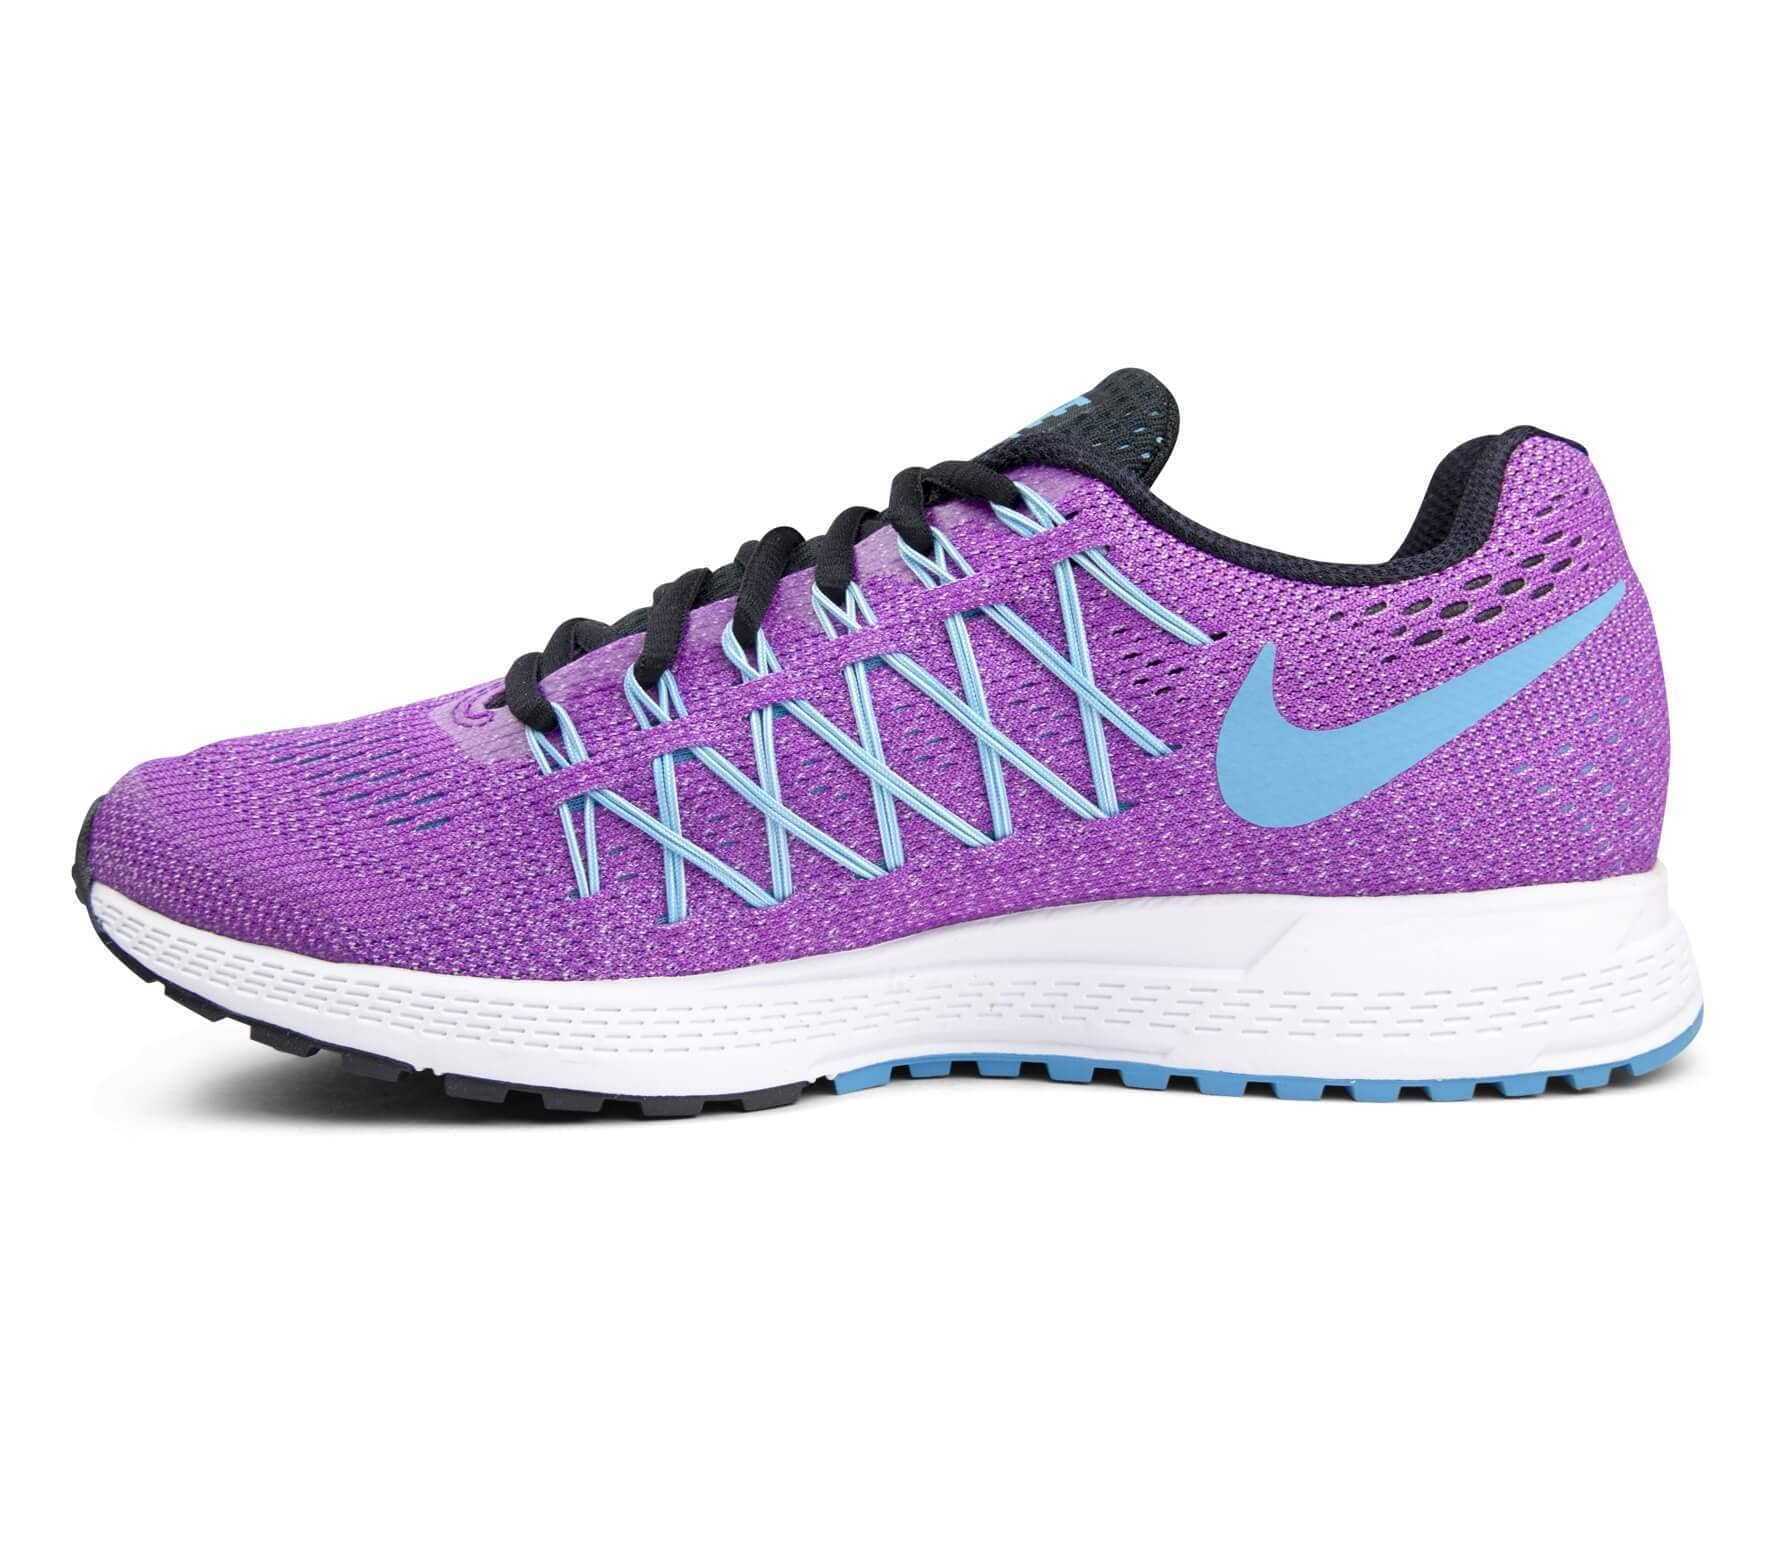 27045117fa6394 Nike - Air Zoom Pegasus 32 women s running shoes (purple light blue ...